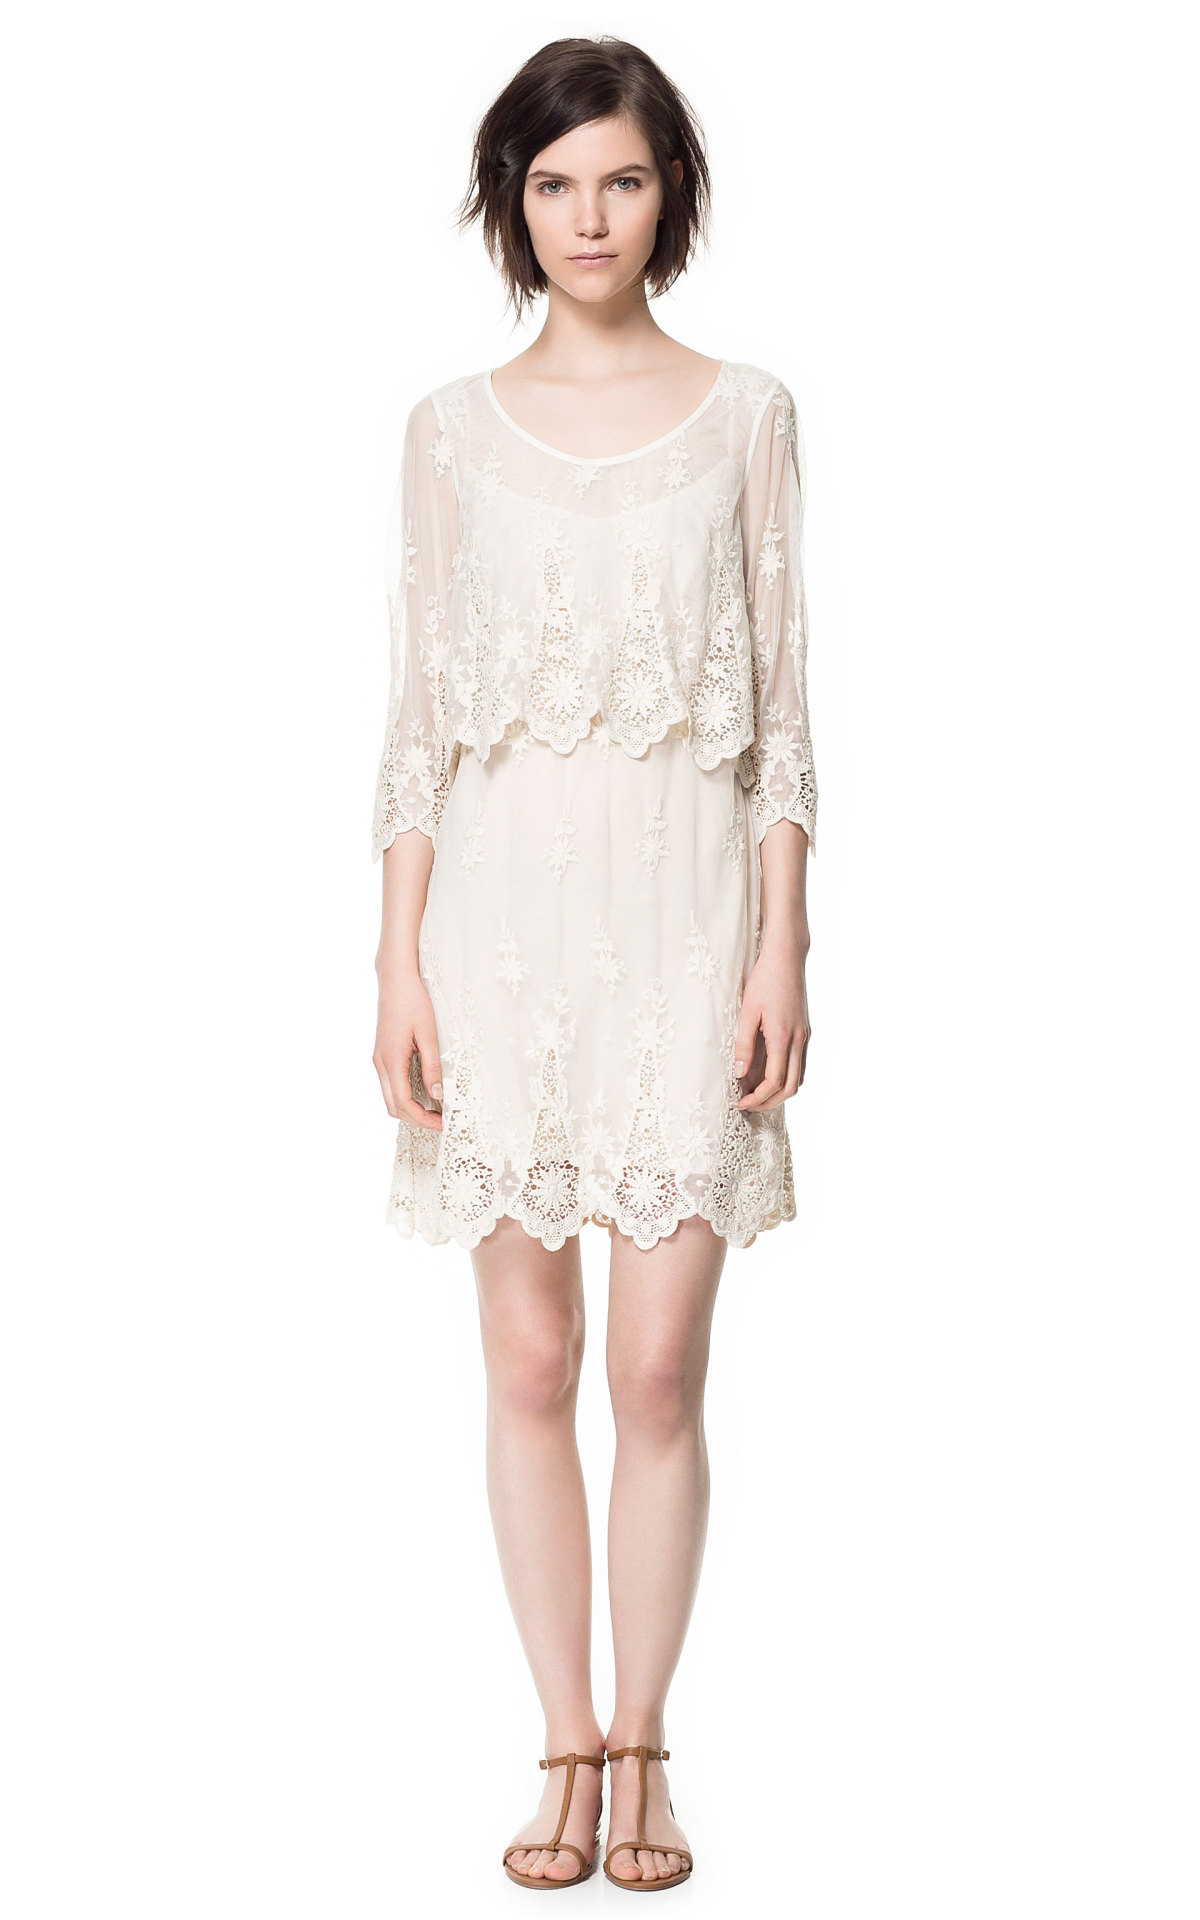 [Lace Dress by Zara]